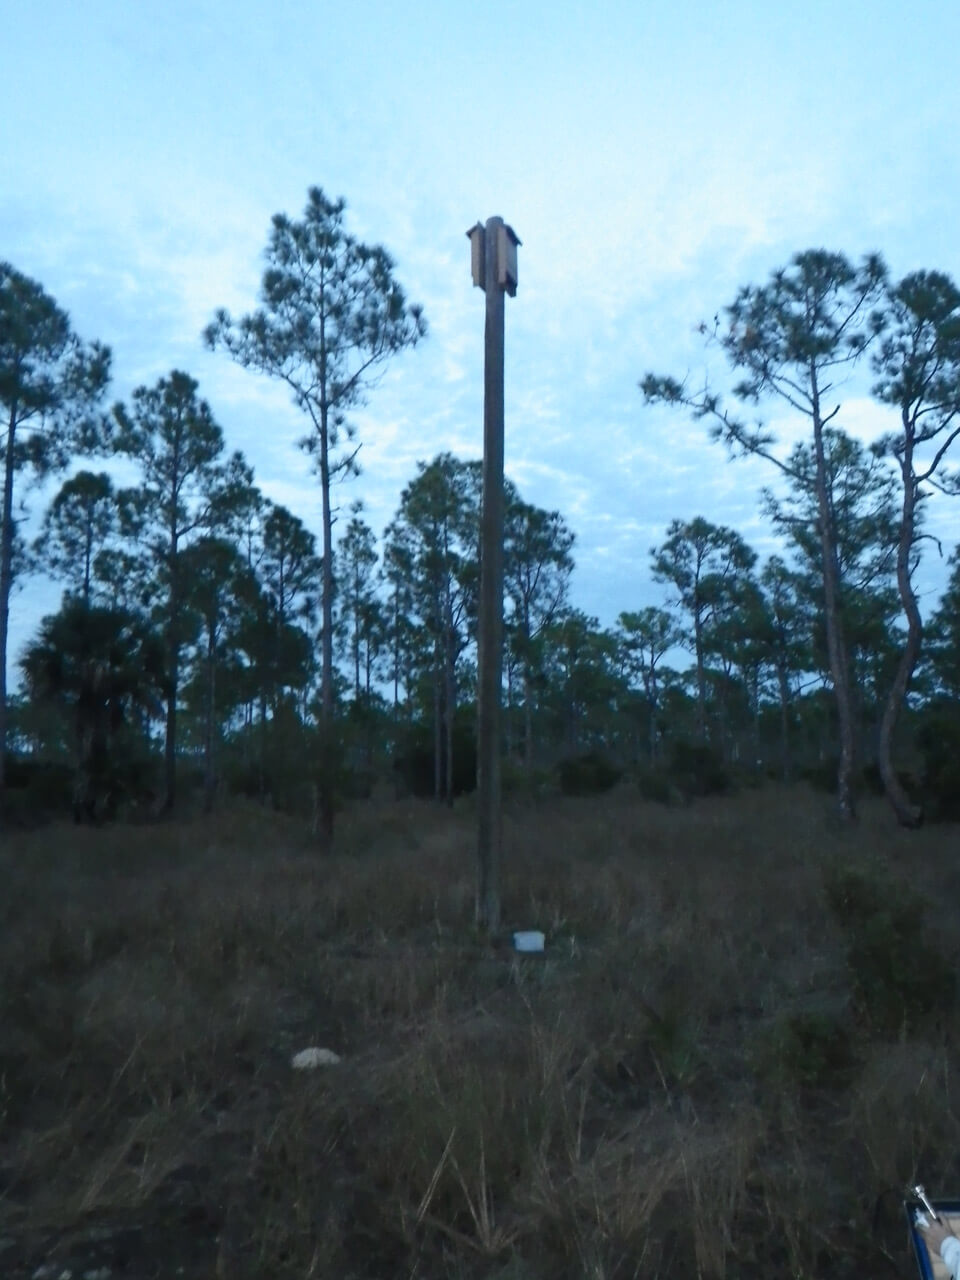 Two large chamber bonneted bat boxes back to back on a utility pole in Babacock Webb Wildlife Management Area